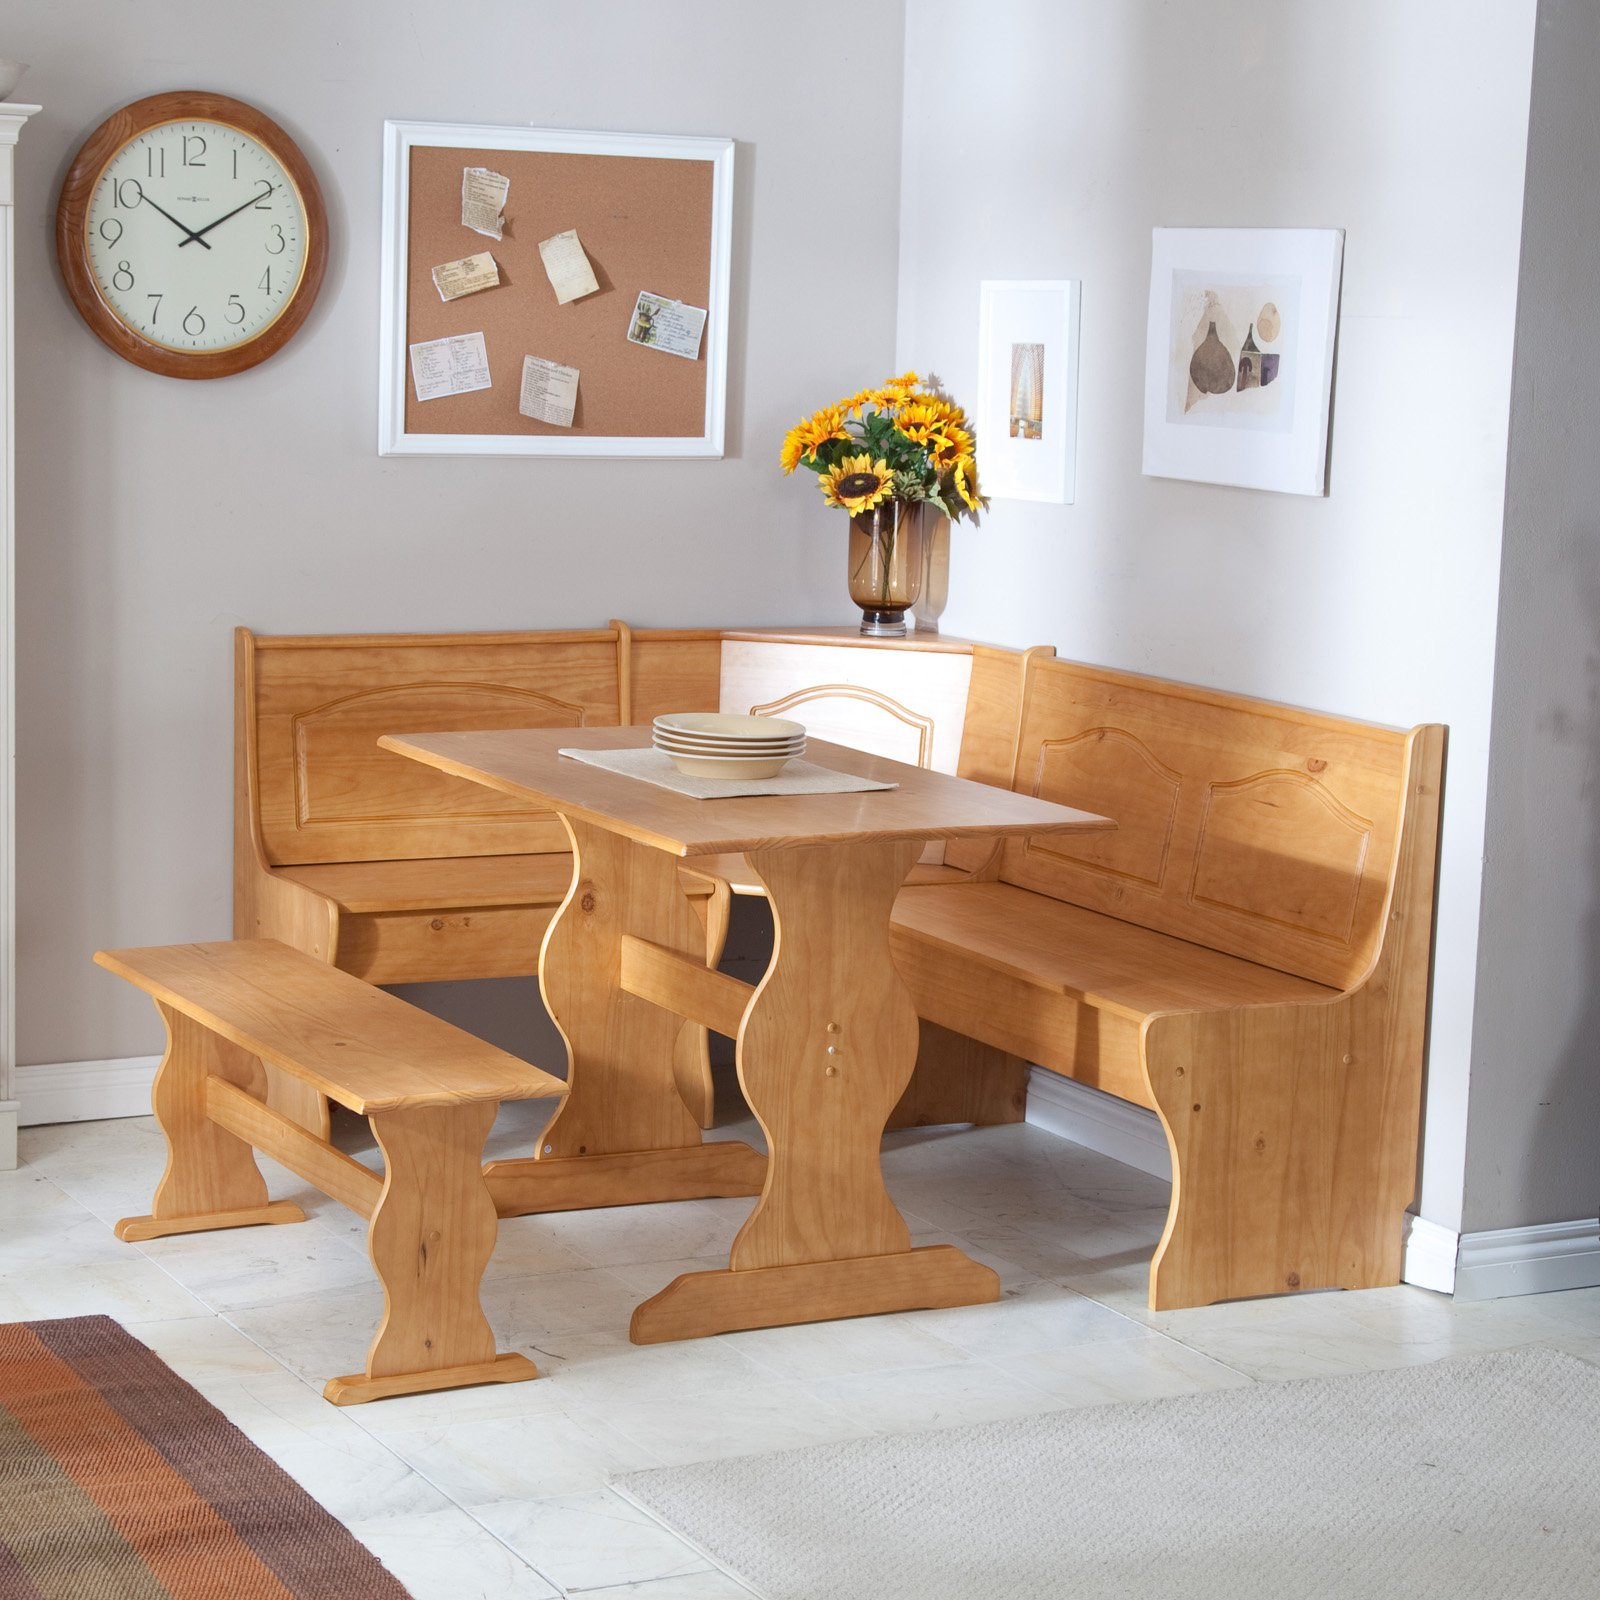 Kitchen corner table with bench photo - 2